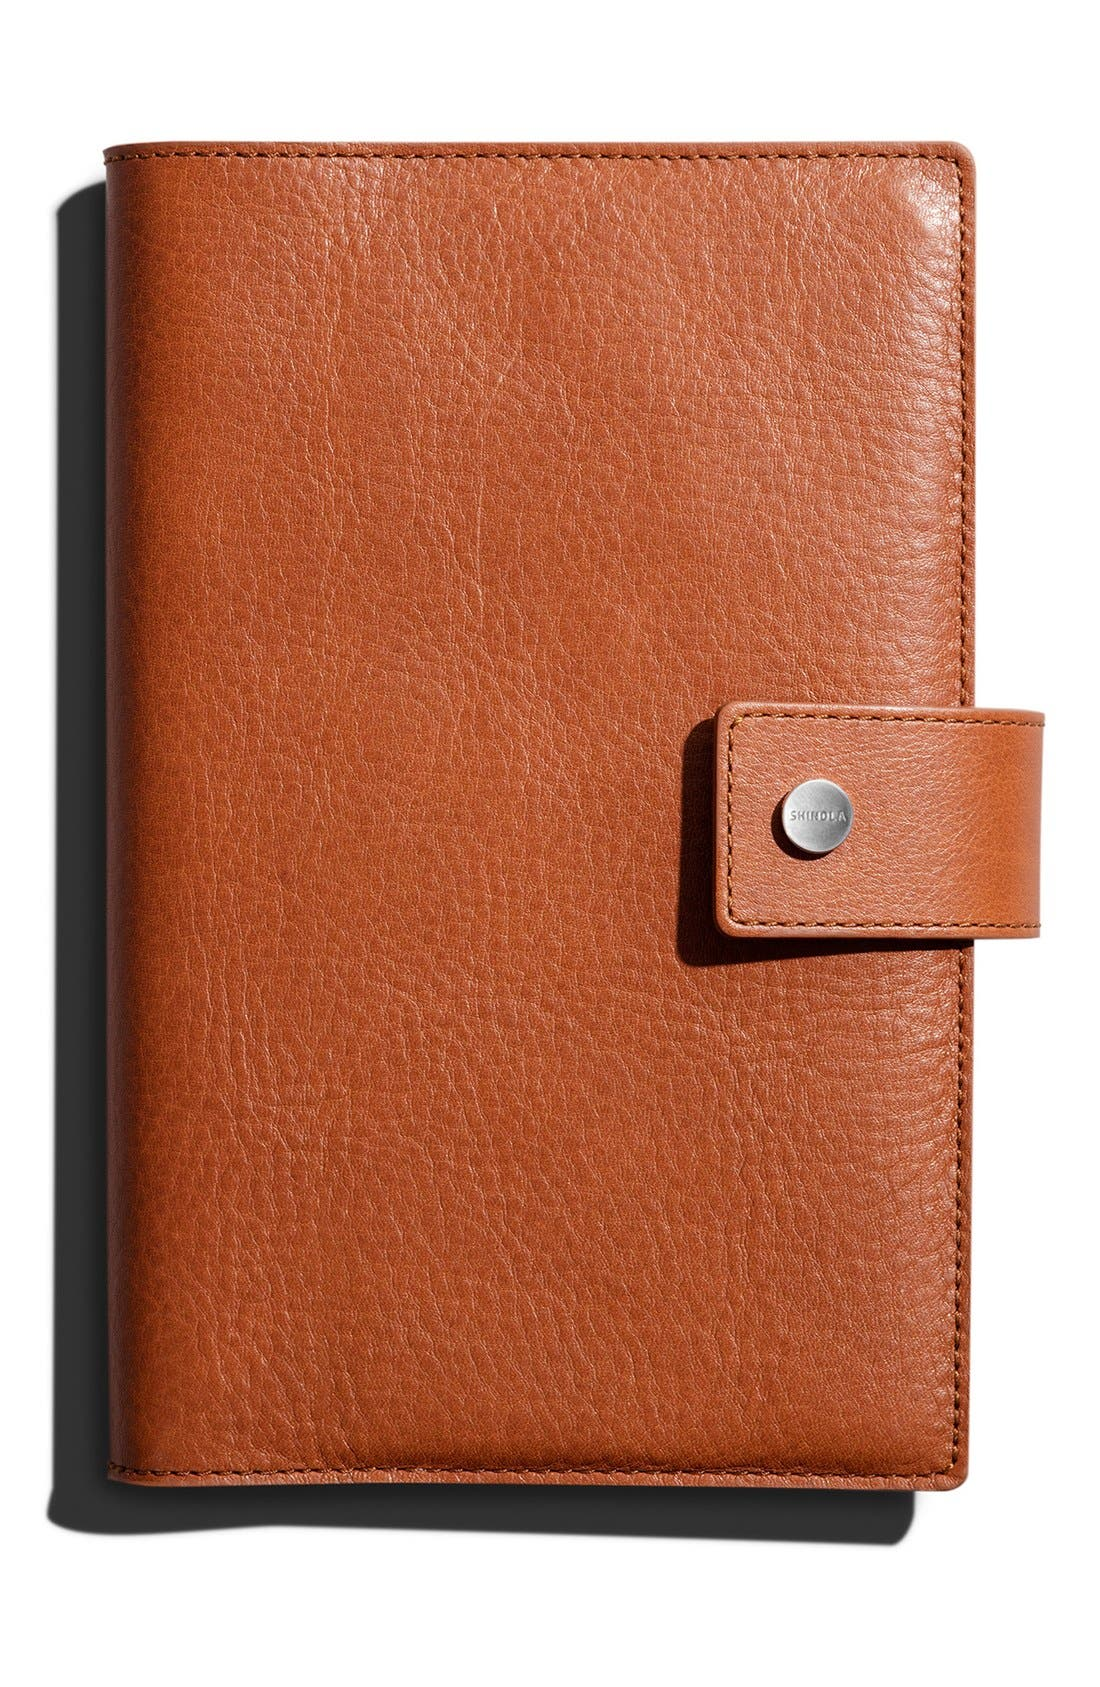 SHINOLA iPad mini Case